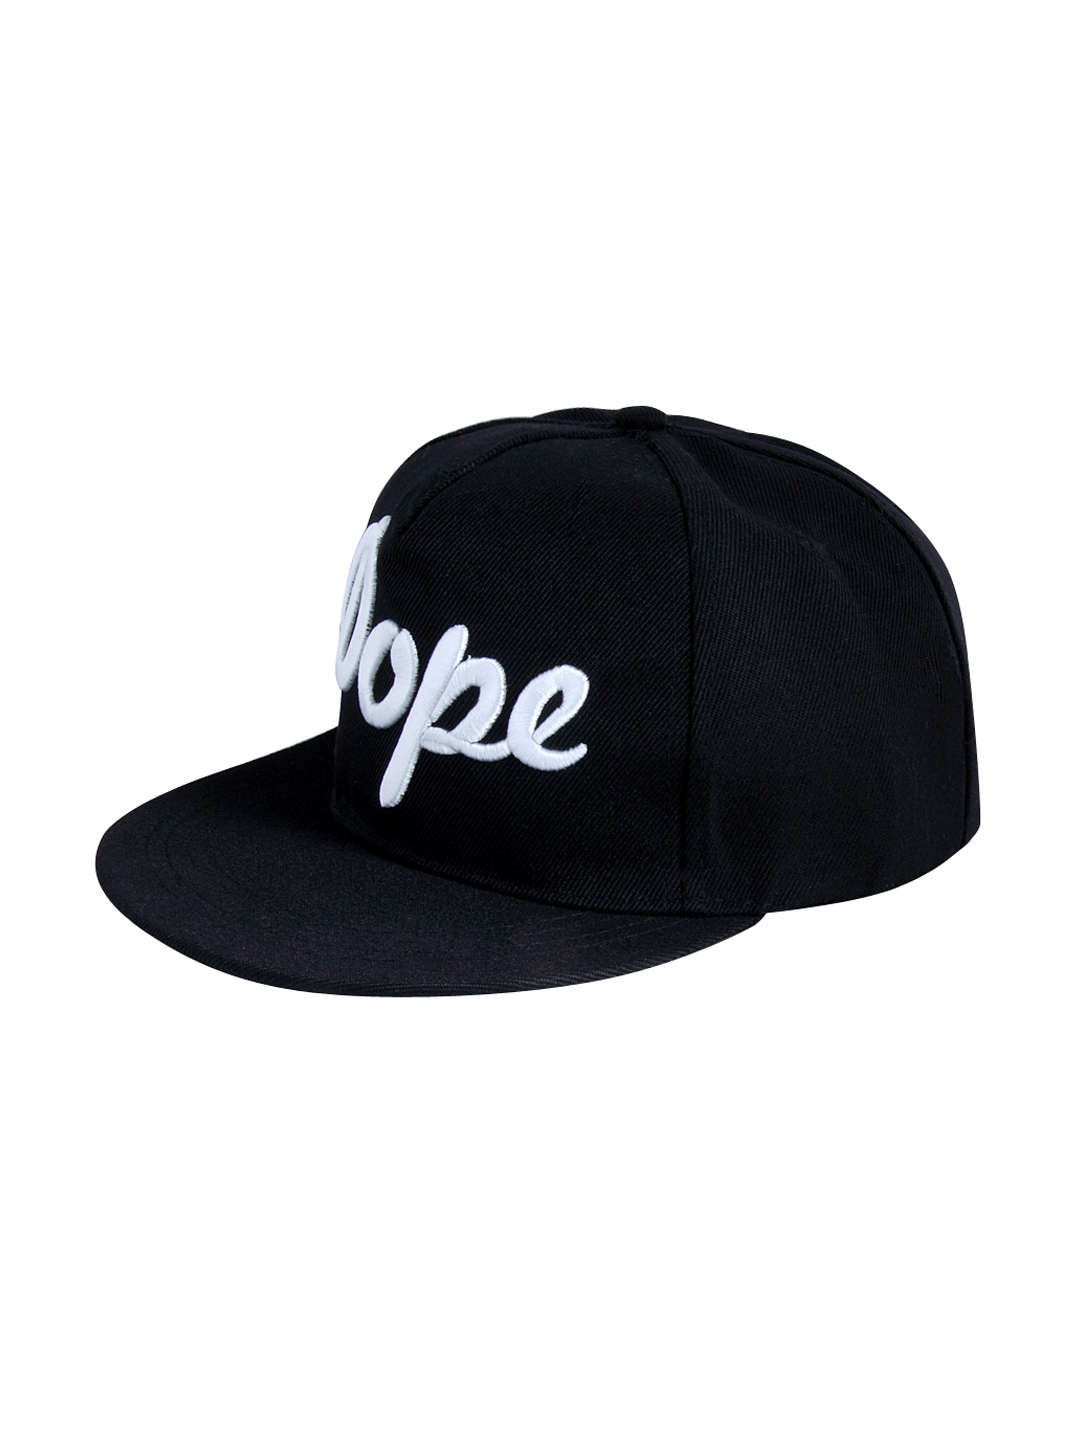 Buy NOISE Unisex Black Snapback Cap With Embroidery - Caps for ... c4e25d17fc0